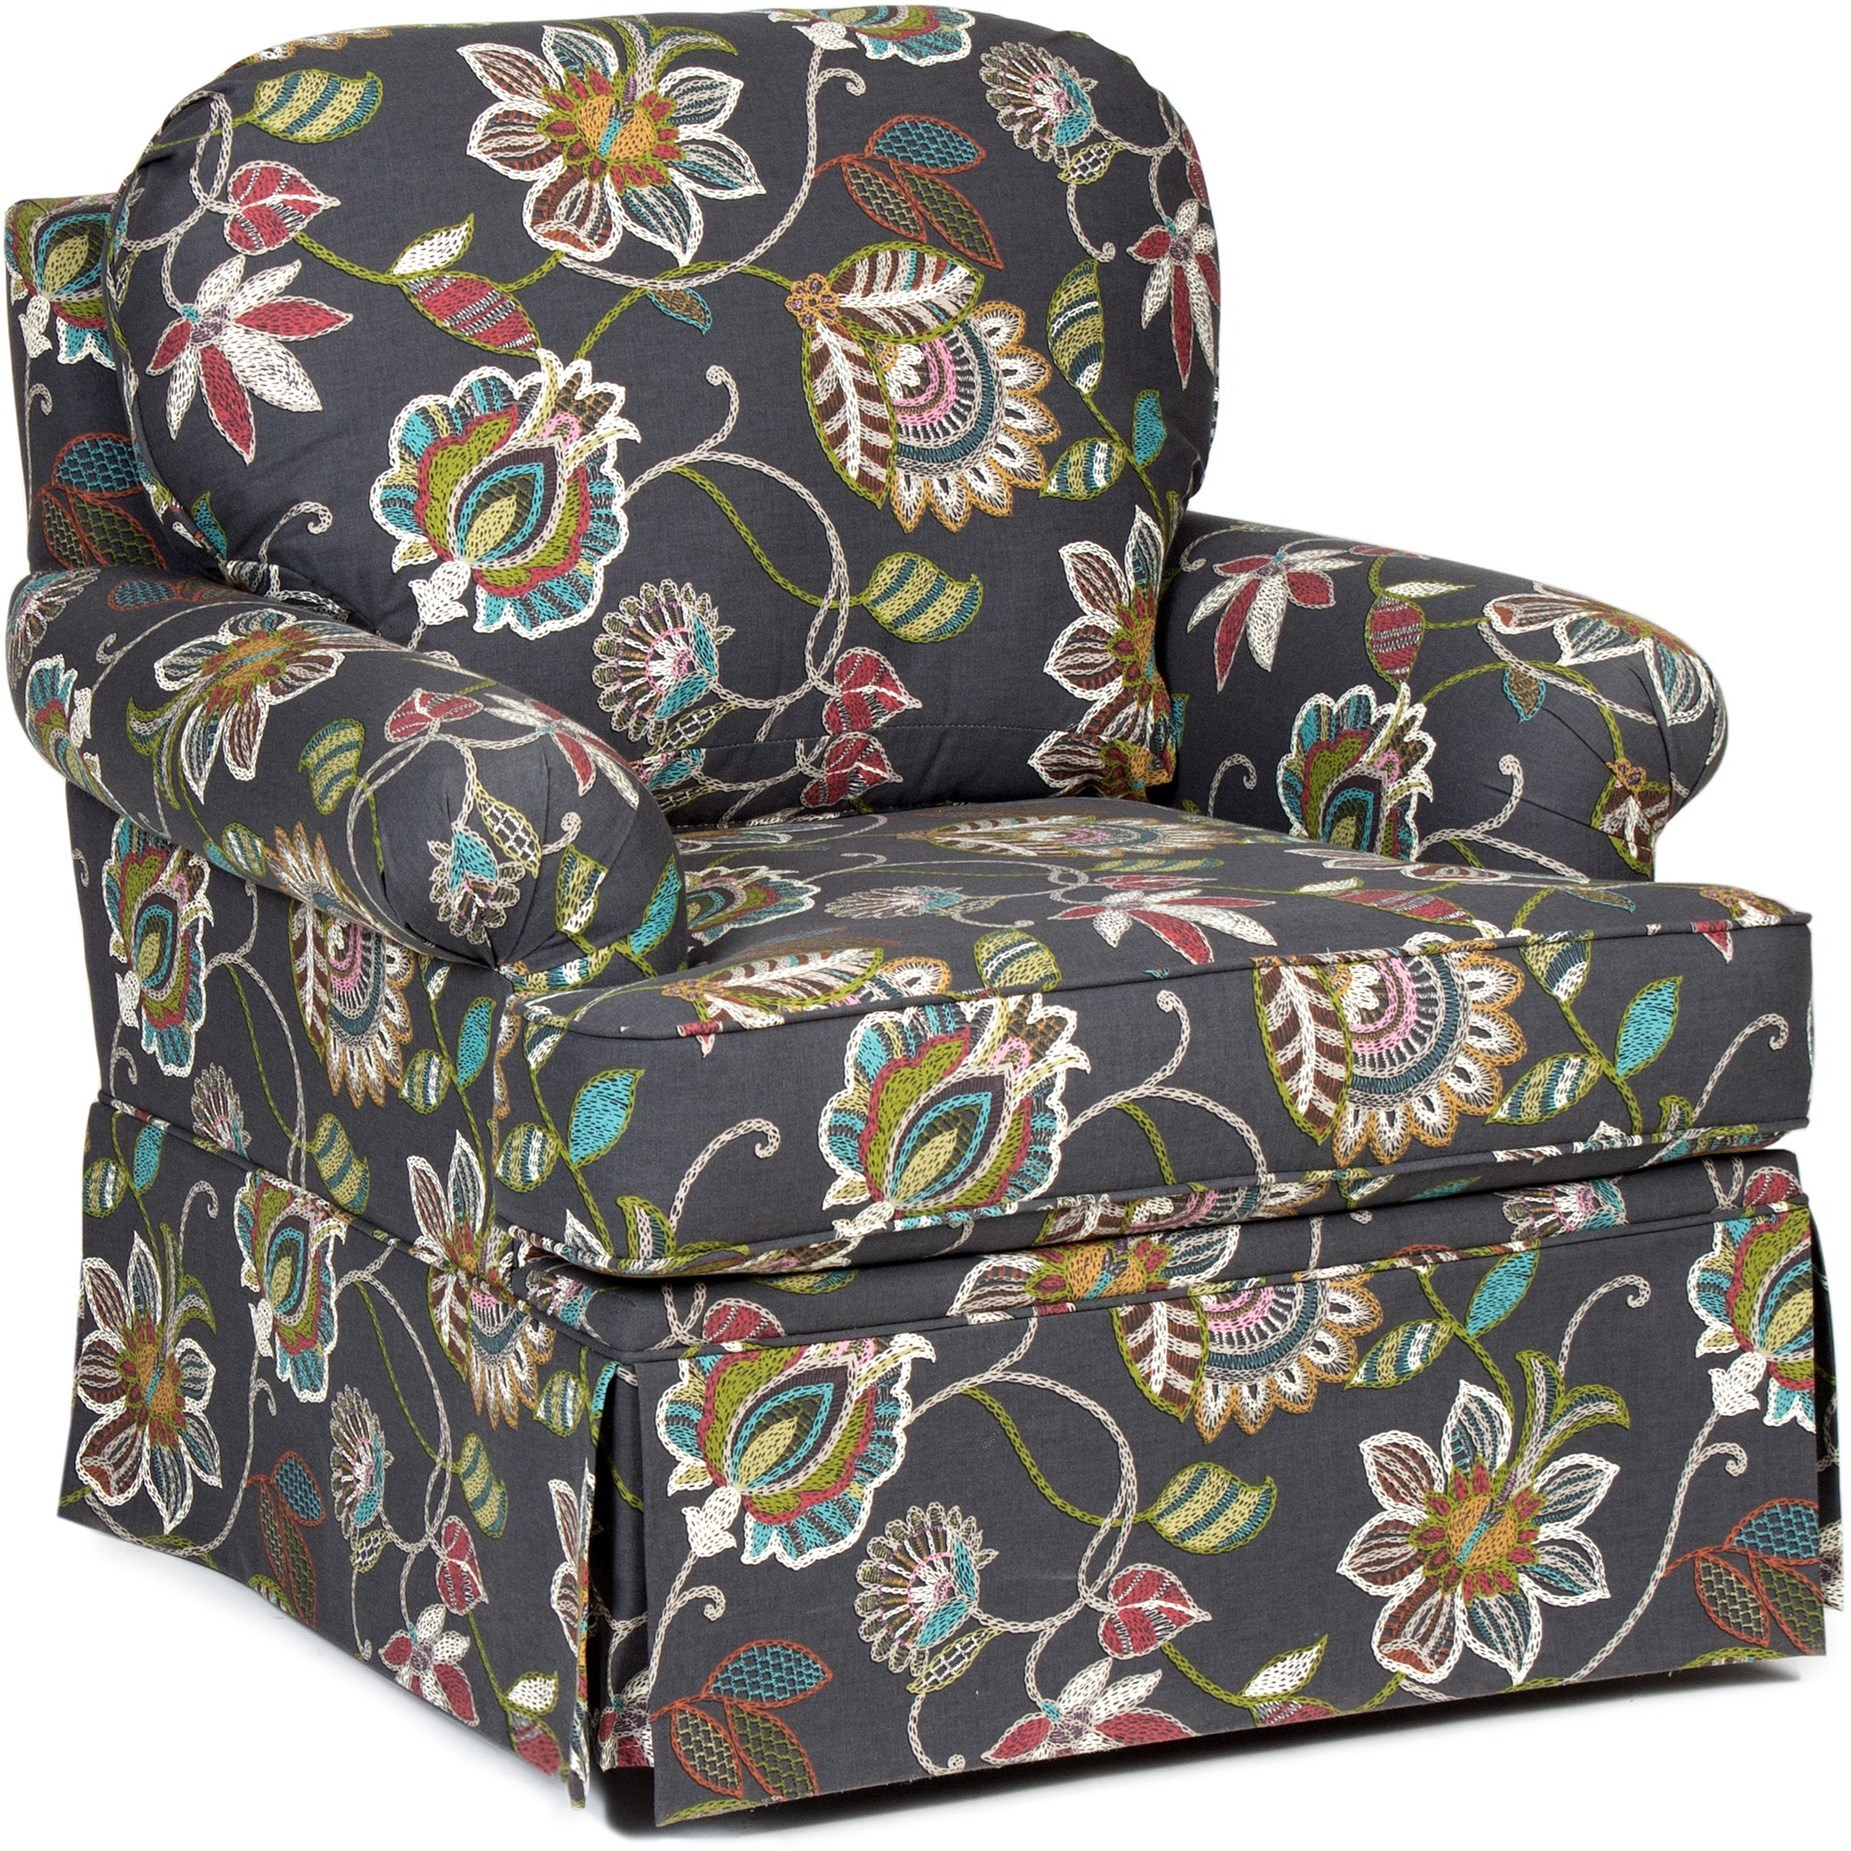 Chairs America Accent Chairs and Ottomans Swivel Glider with